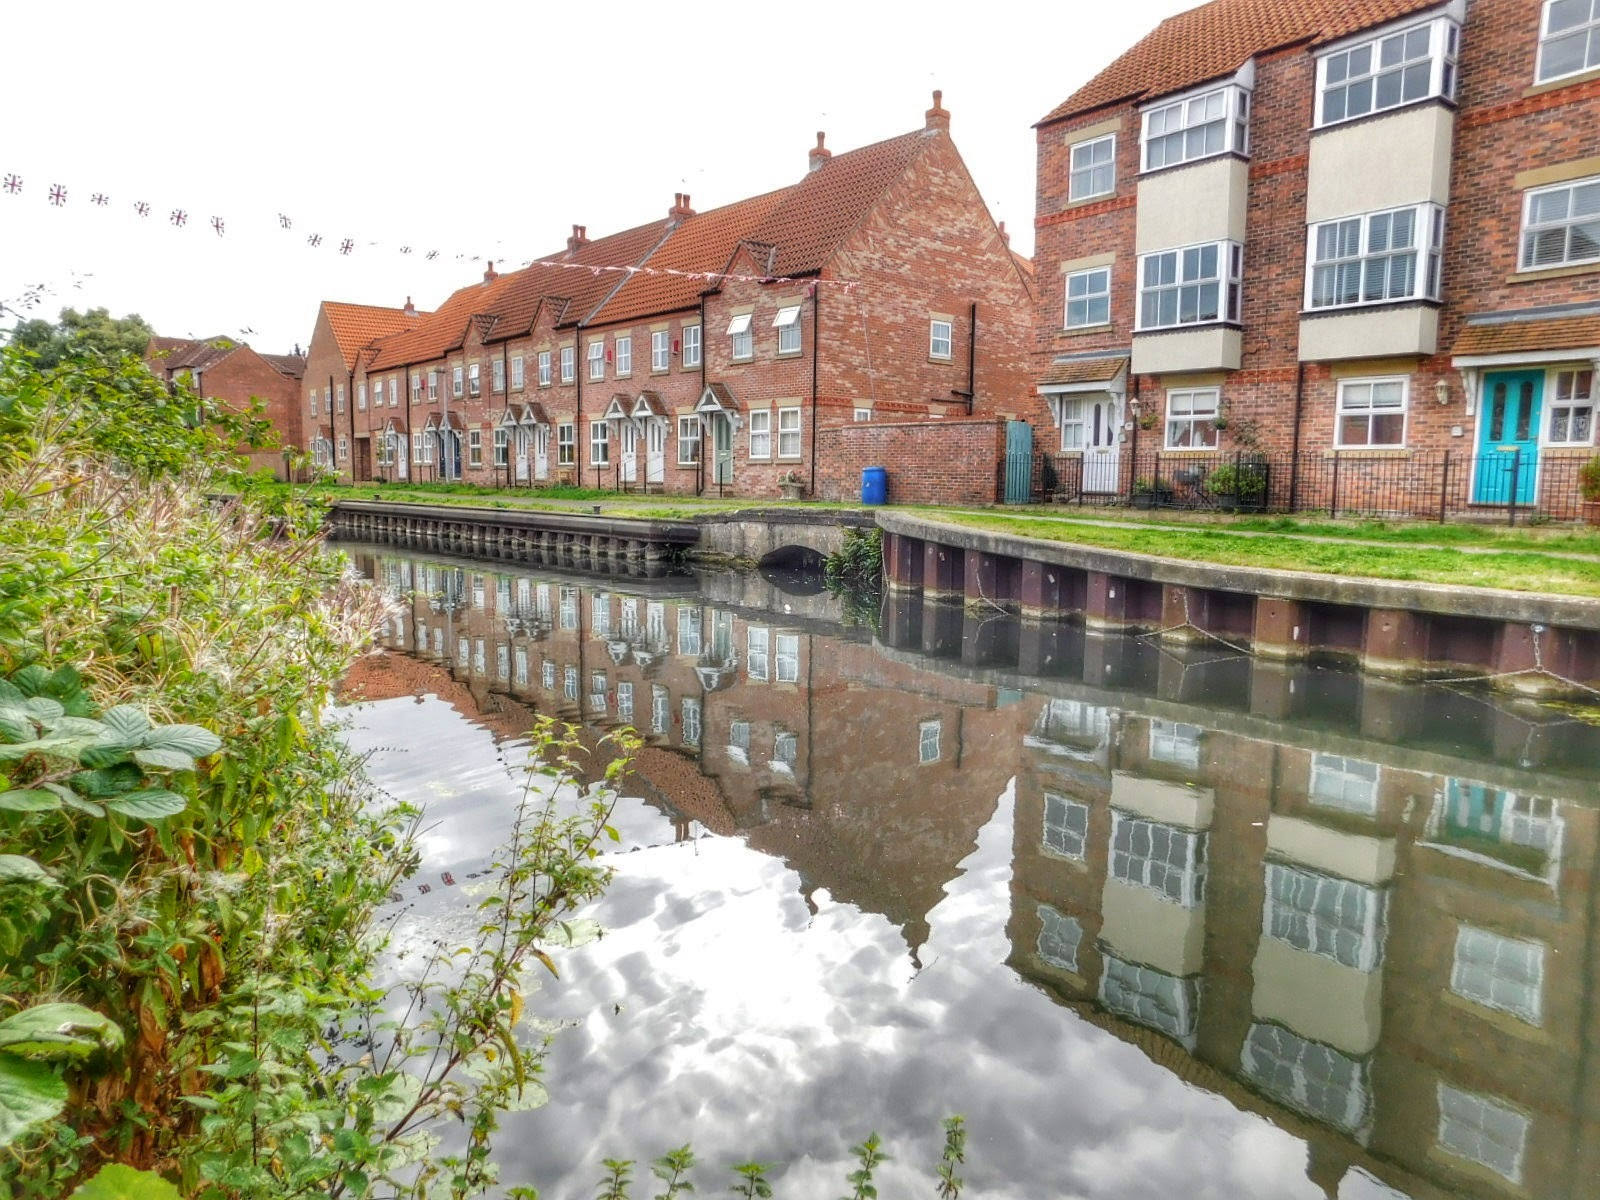 Beverley Beck, Sunday morning walk from home in Beverley, UK by Sheila Button